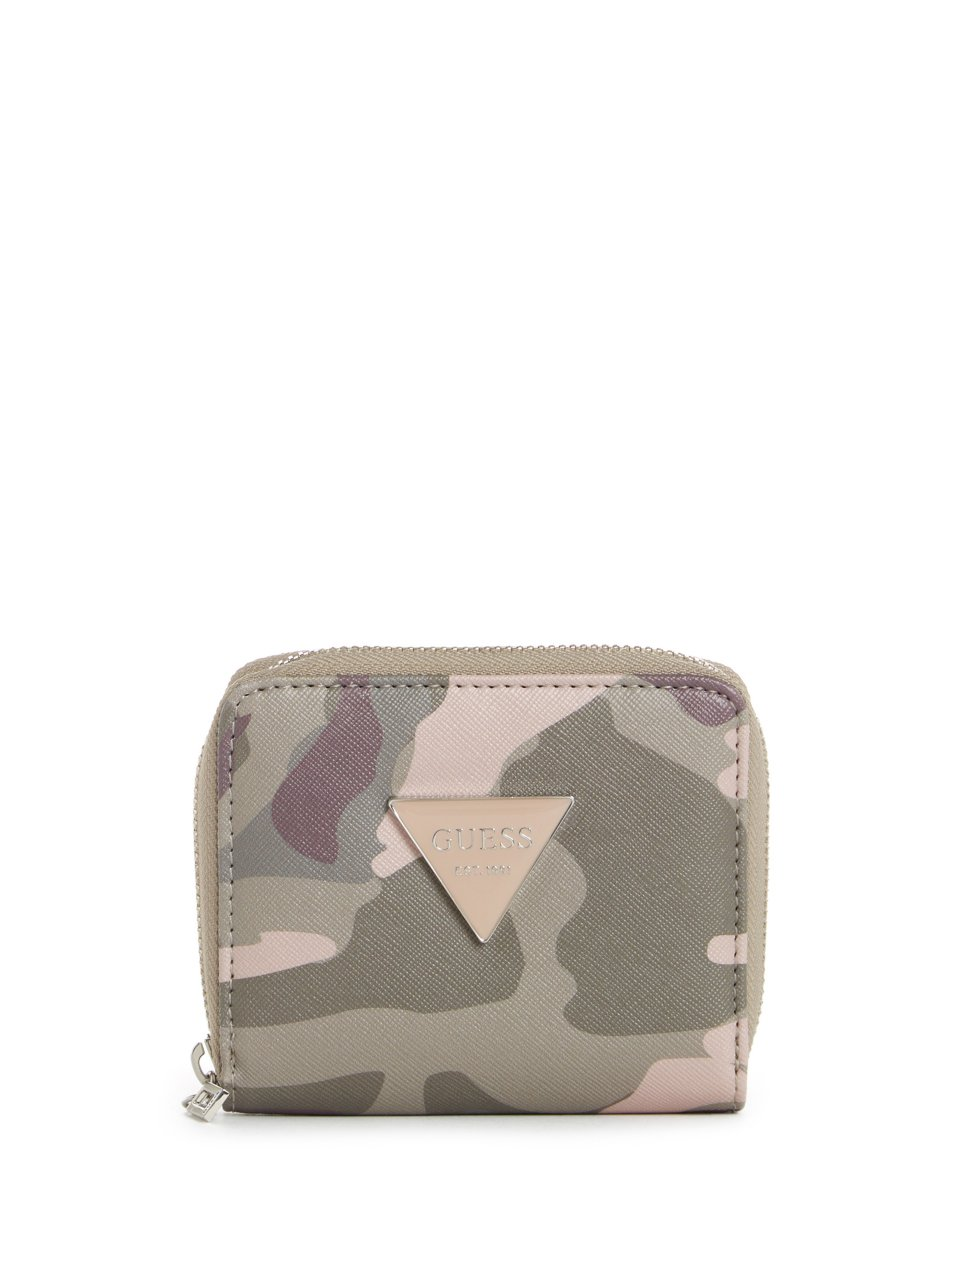 GUESS Factory Womens Abree Small Zip-Around Wallet